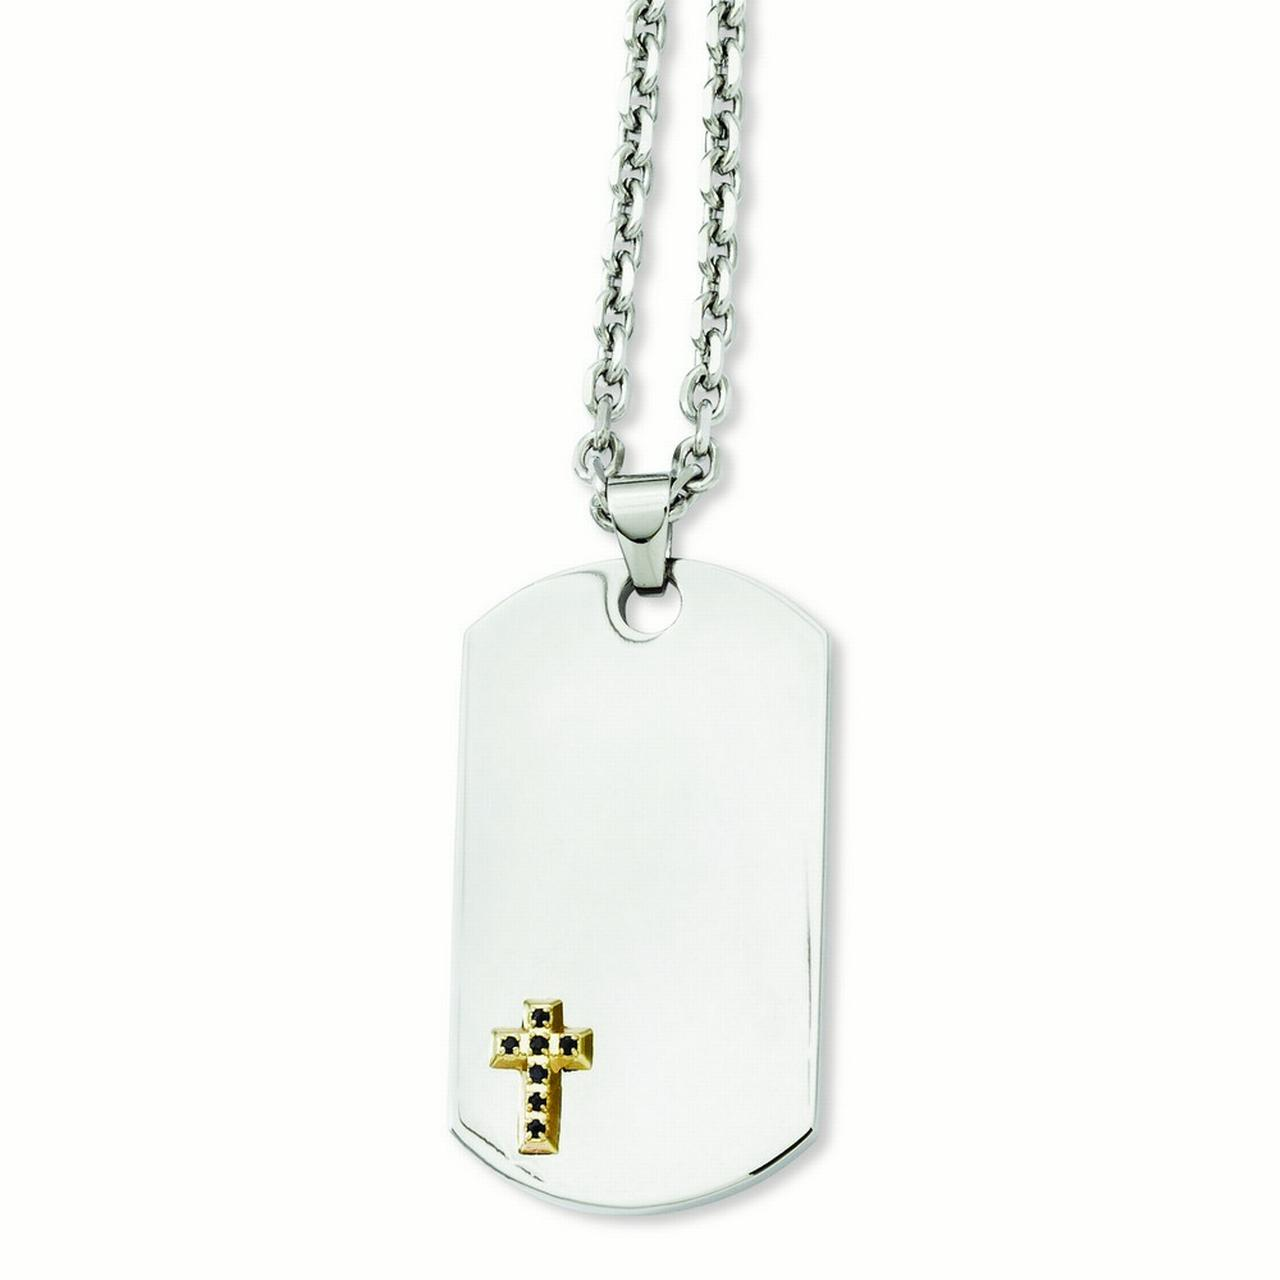 Stainless Steel and 14k With Sapphires Cross Dog Tag Pendant 24inch Necklace 24 Inch by Jewelryweb